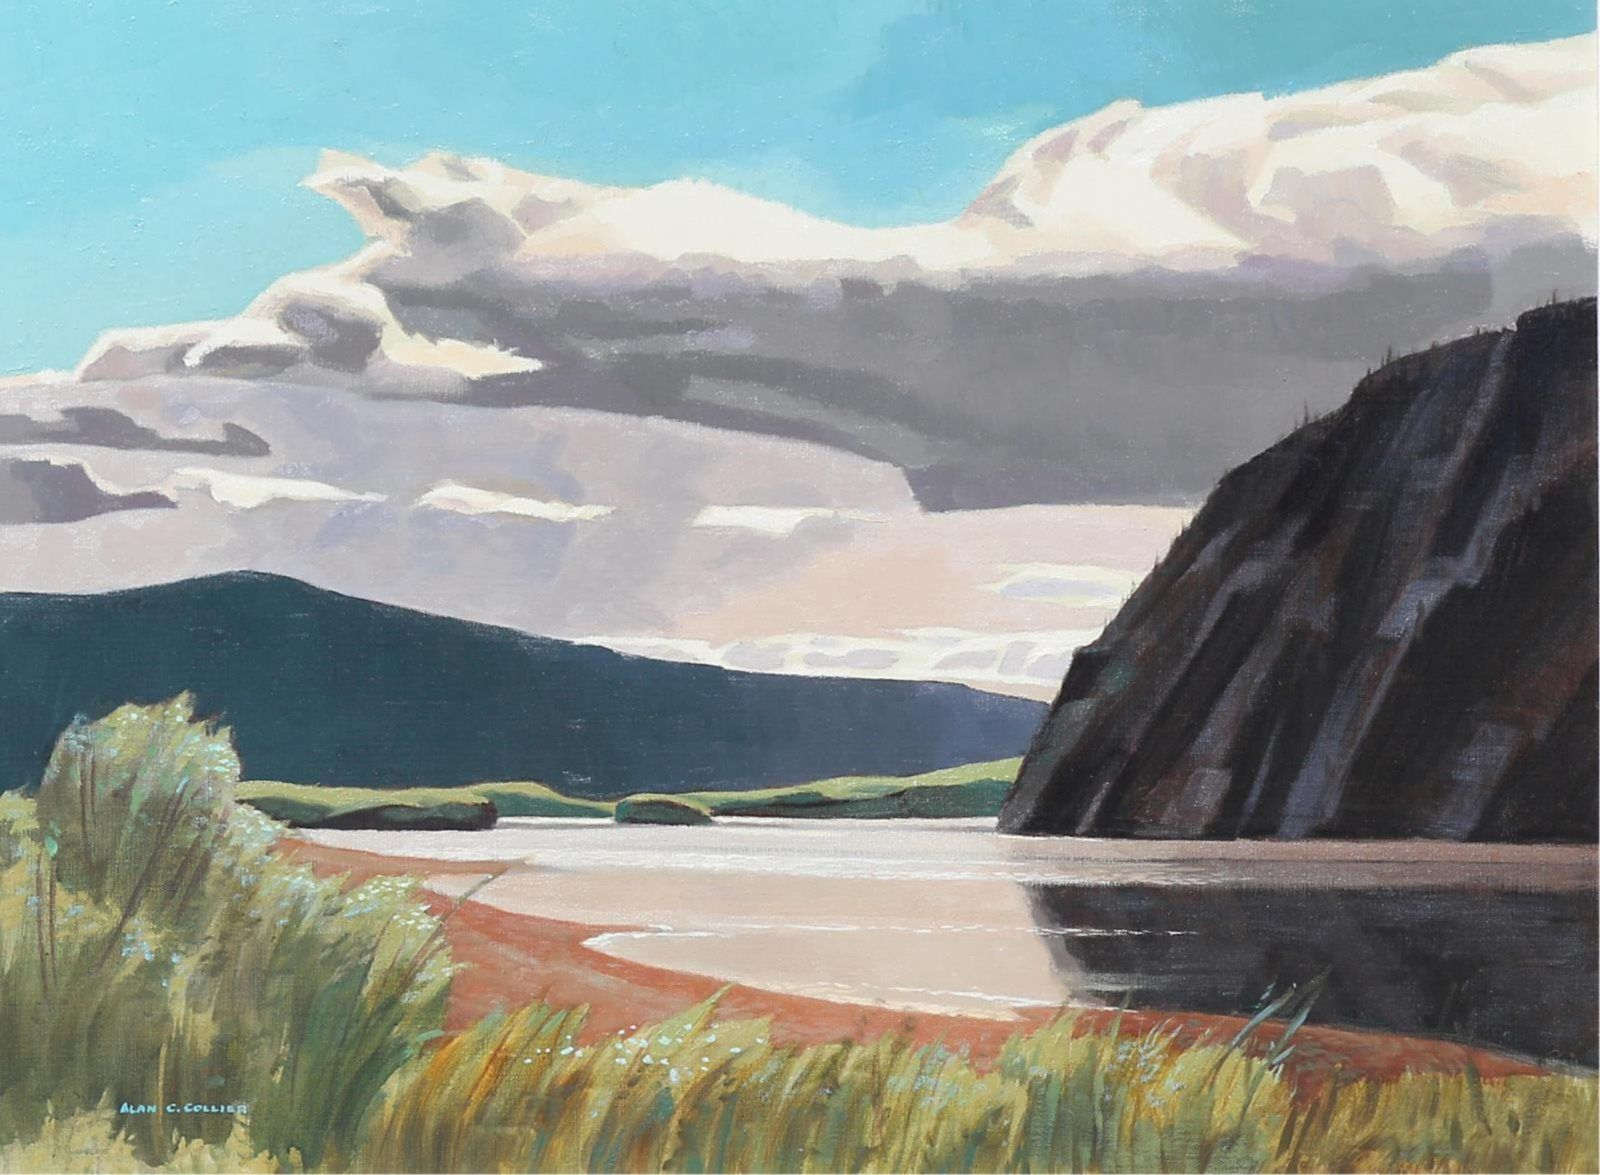 Alan collier yukon river canadian painters canadian